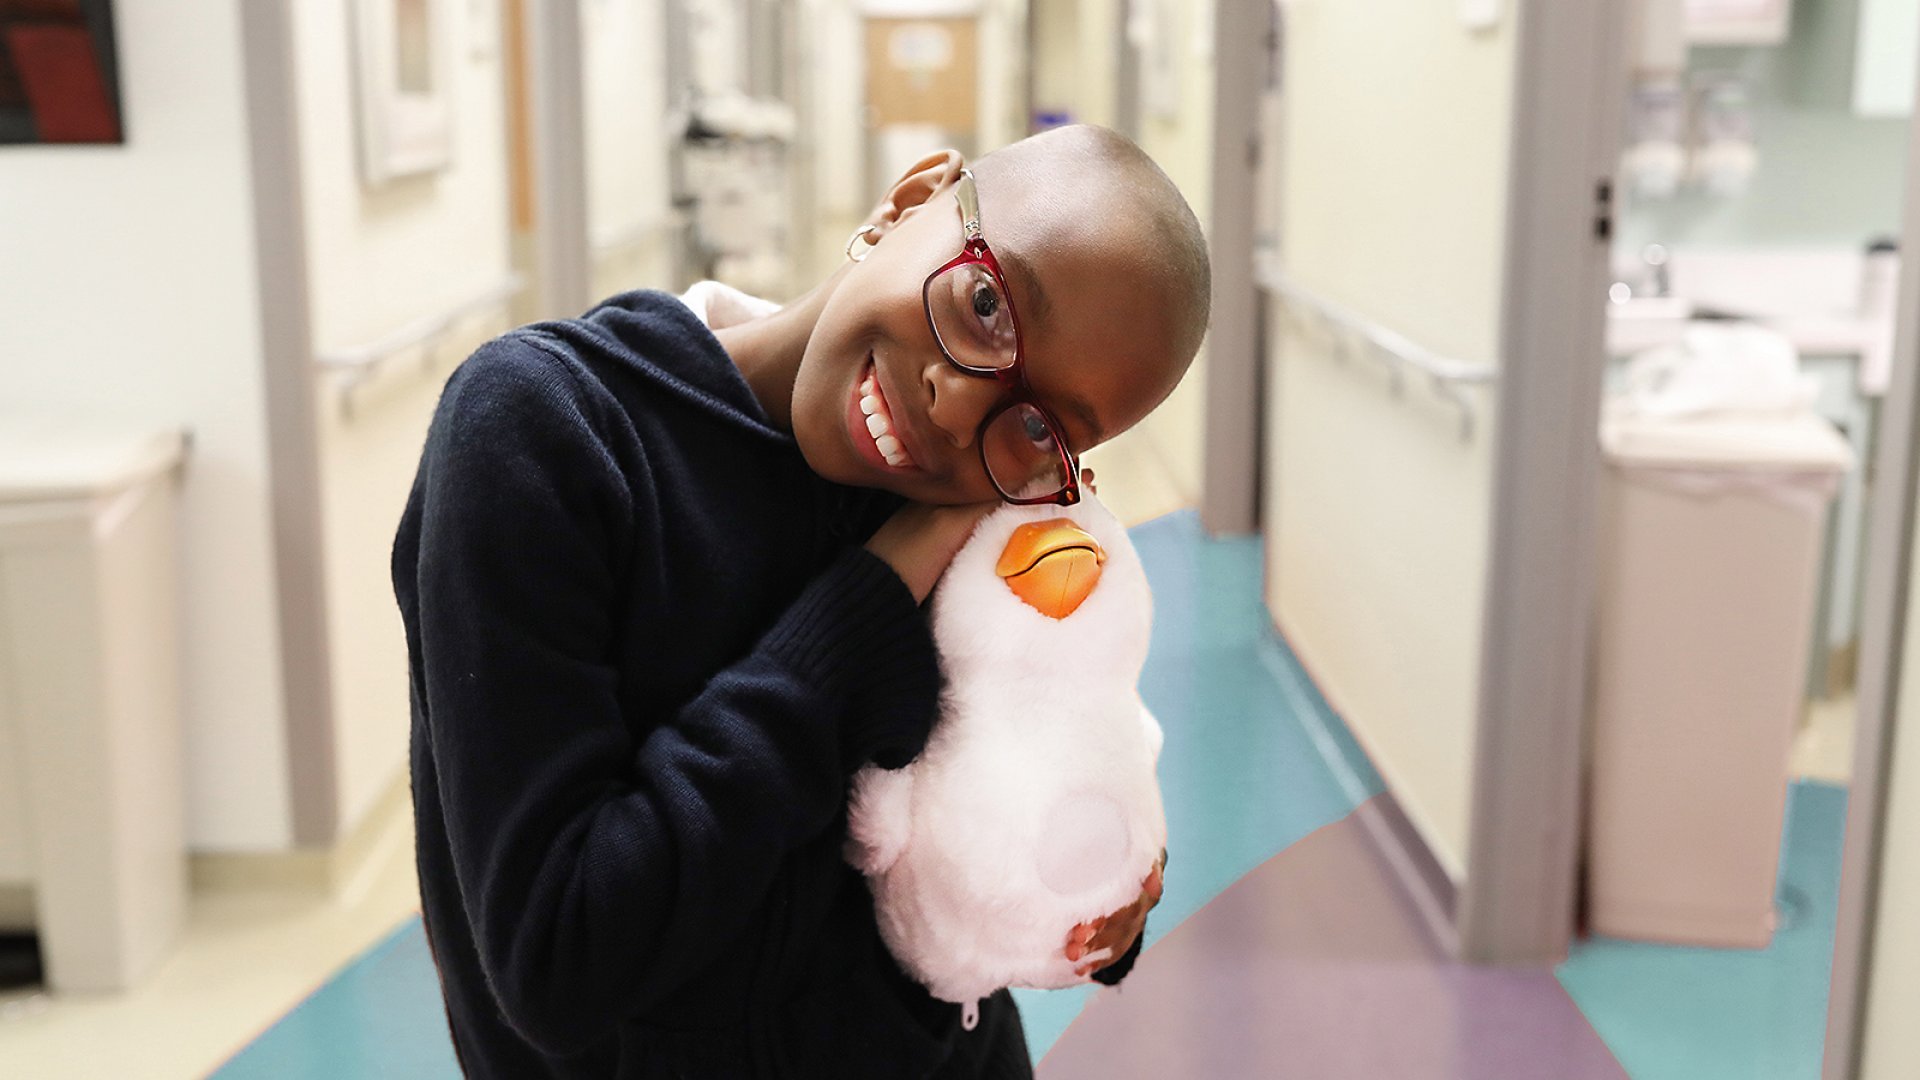 My Special Aflac DuckTM emulates young patients' moods, responds to the same often-painful therapies, and dances, quacks and nuzzles to help comfort children, like Teryn, when they need it the most.